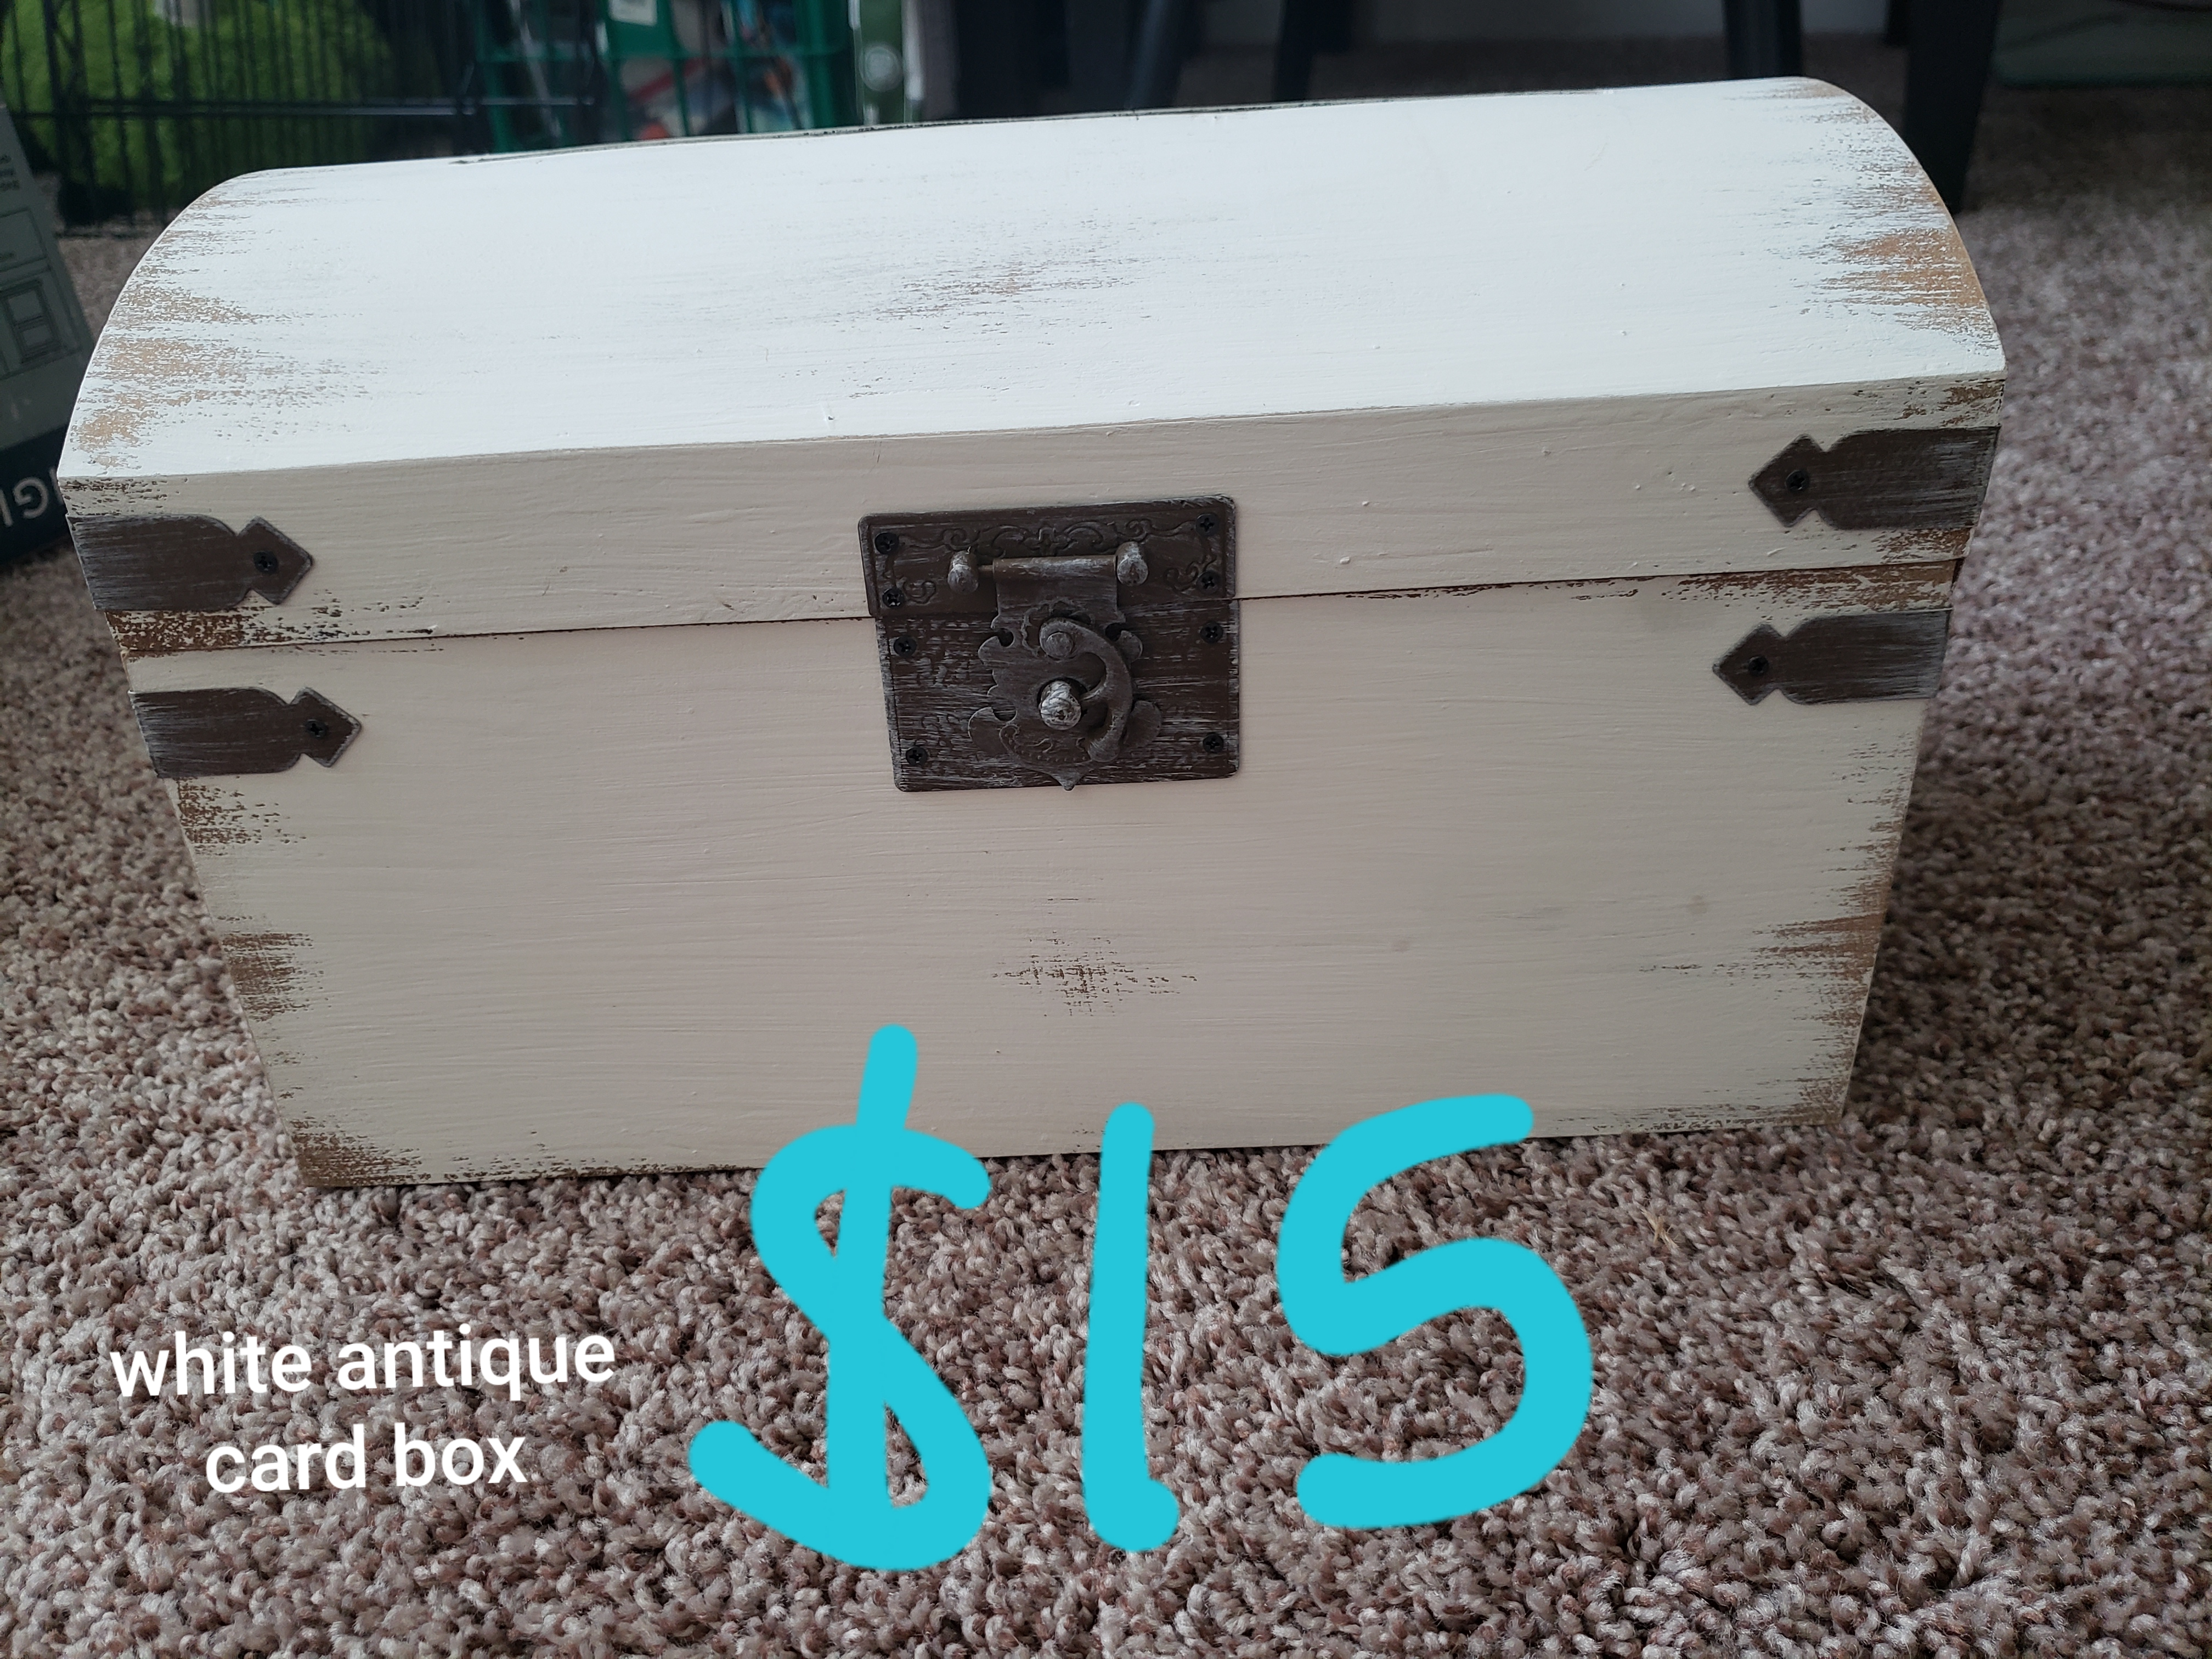 White Antique Card Box